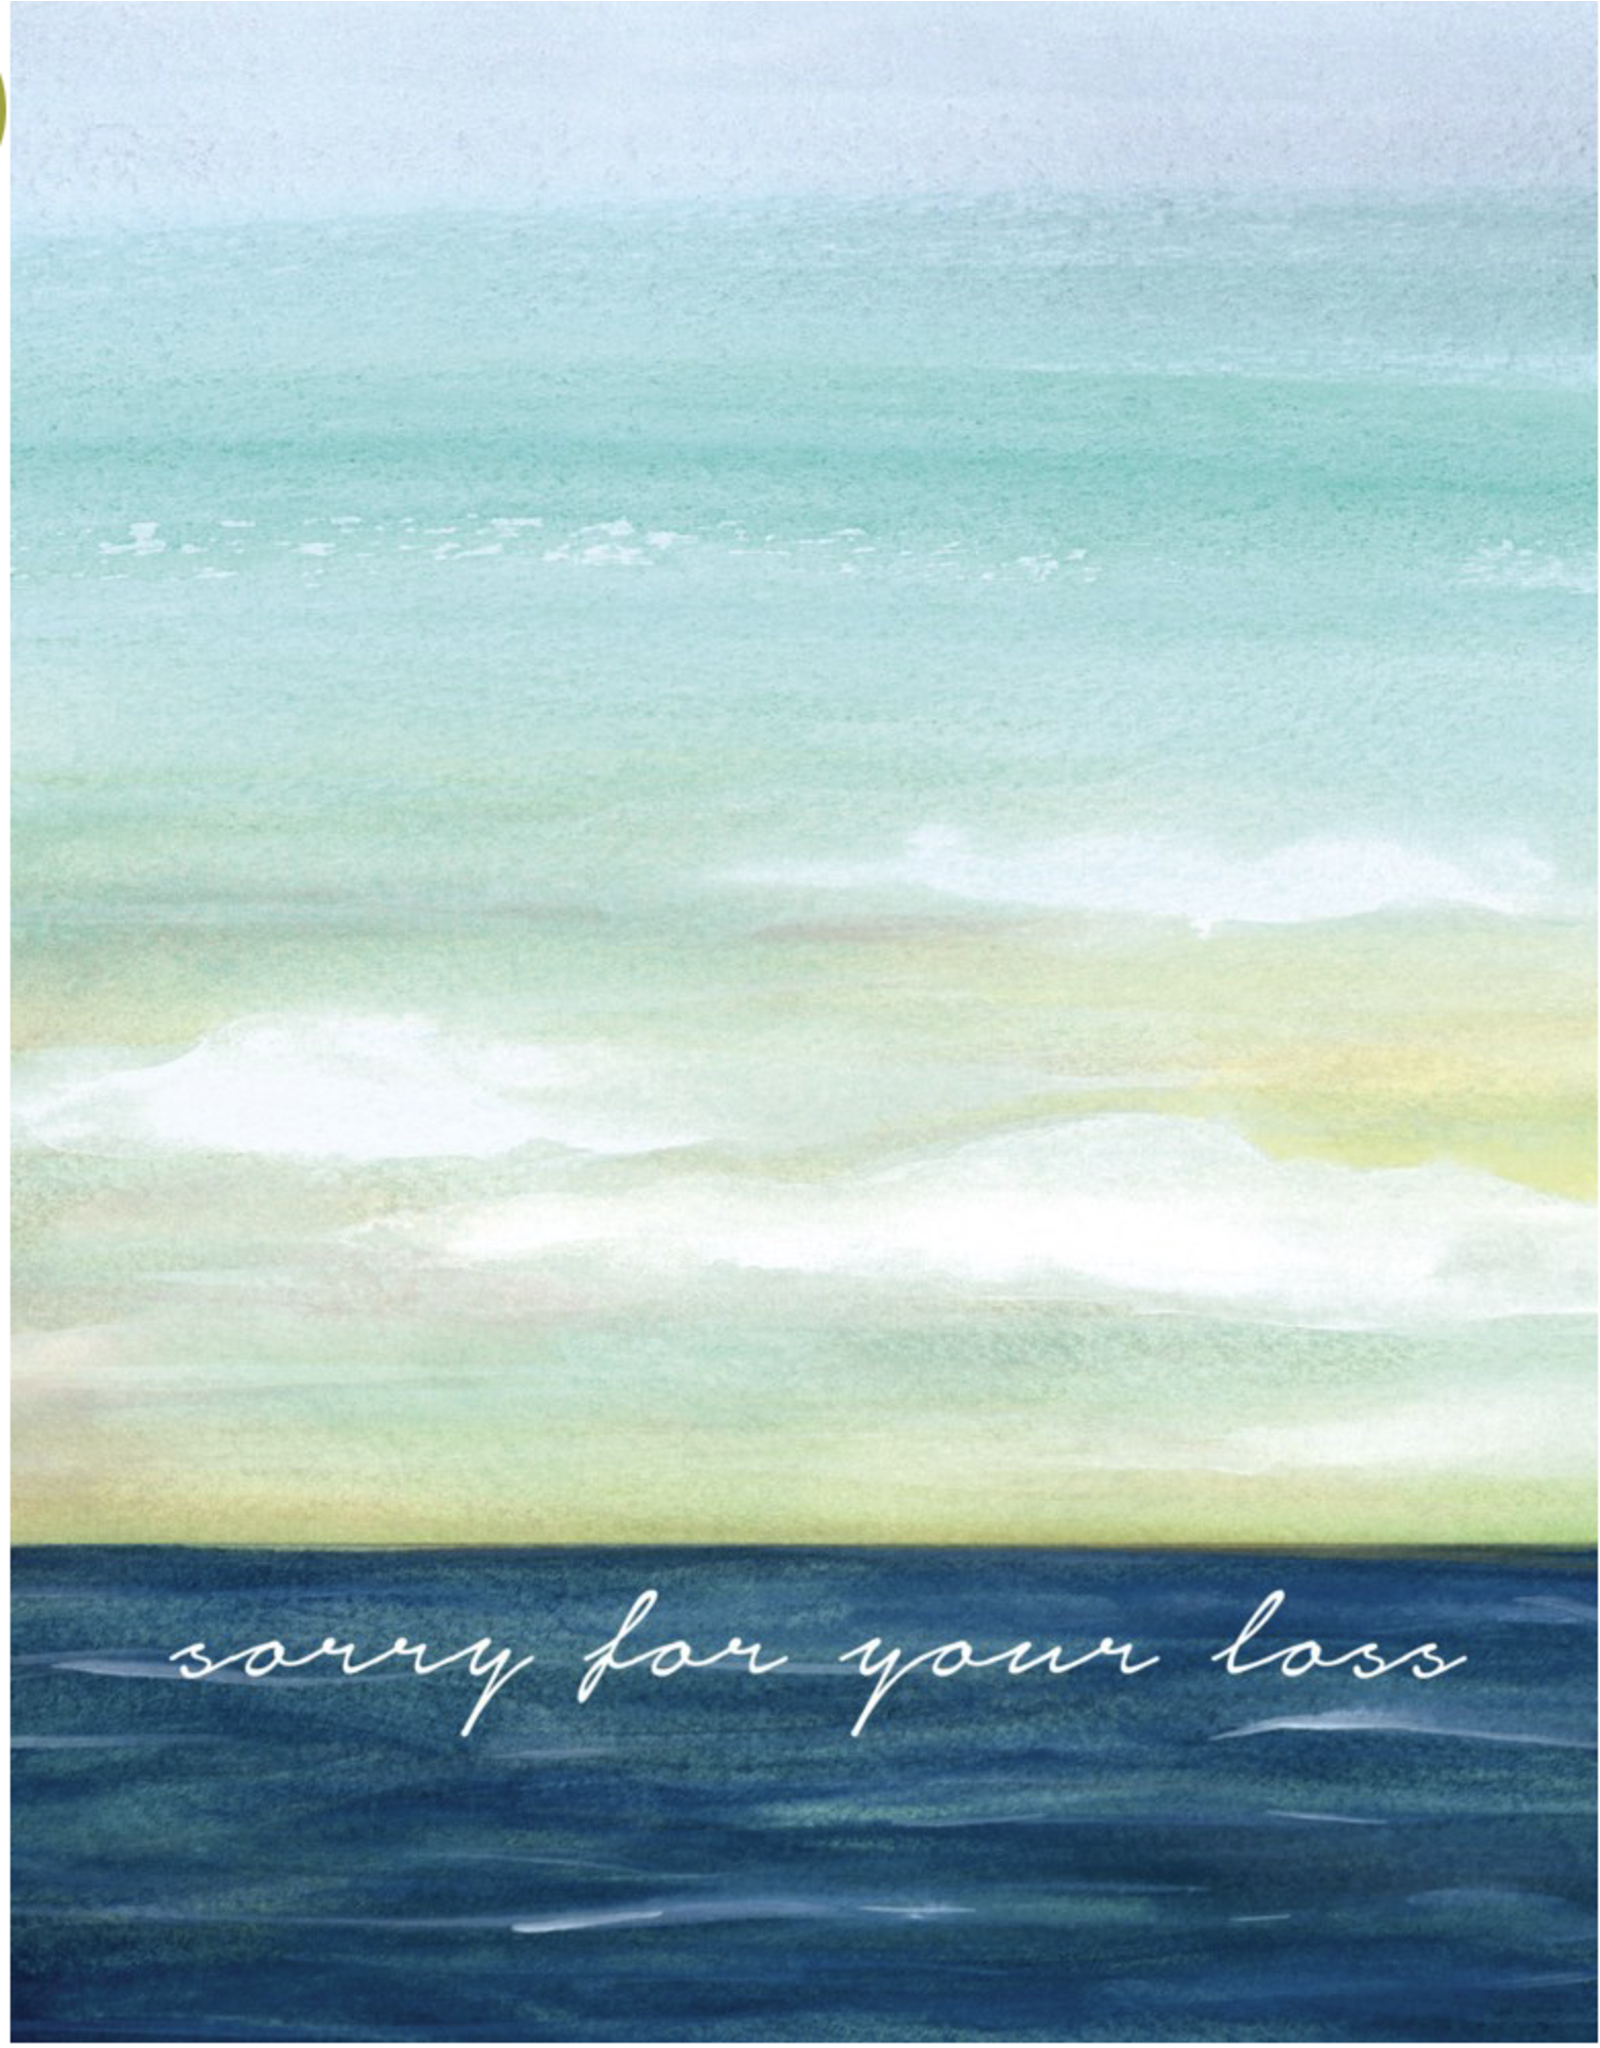 Sympathy - sorry for your loss